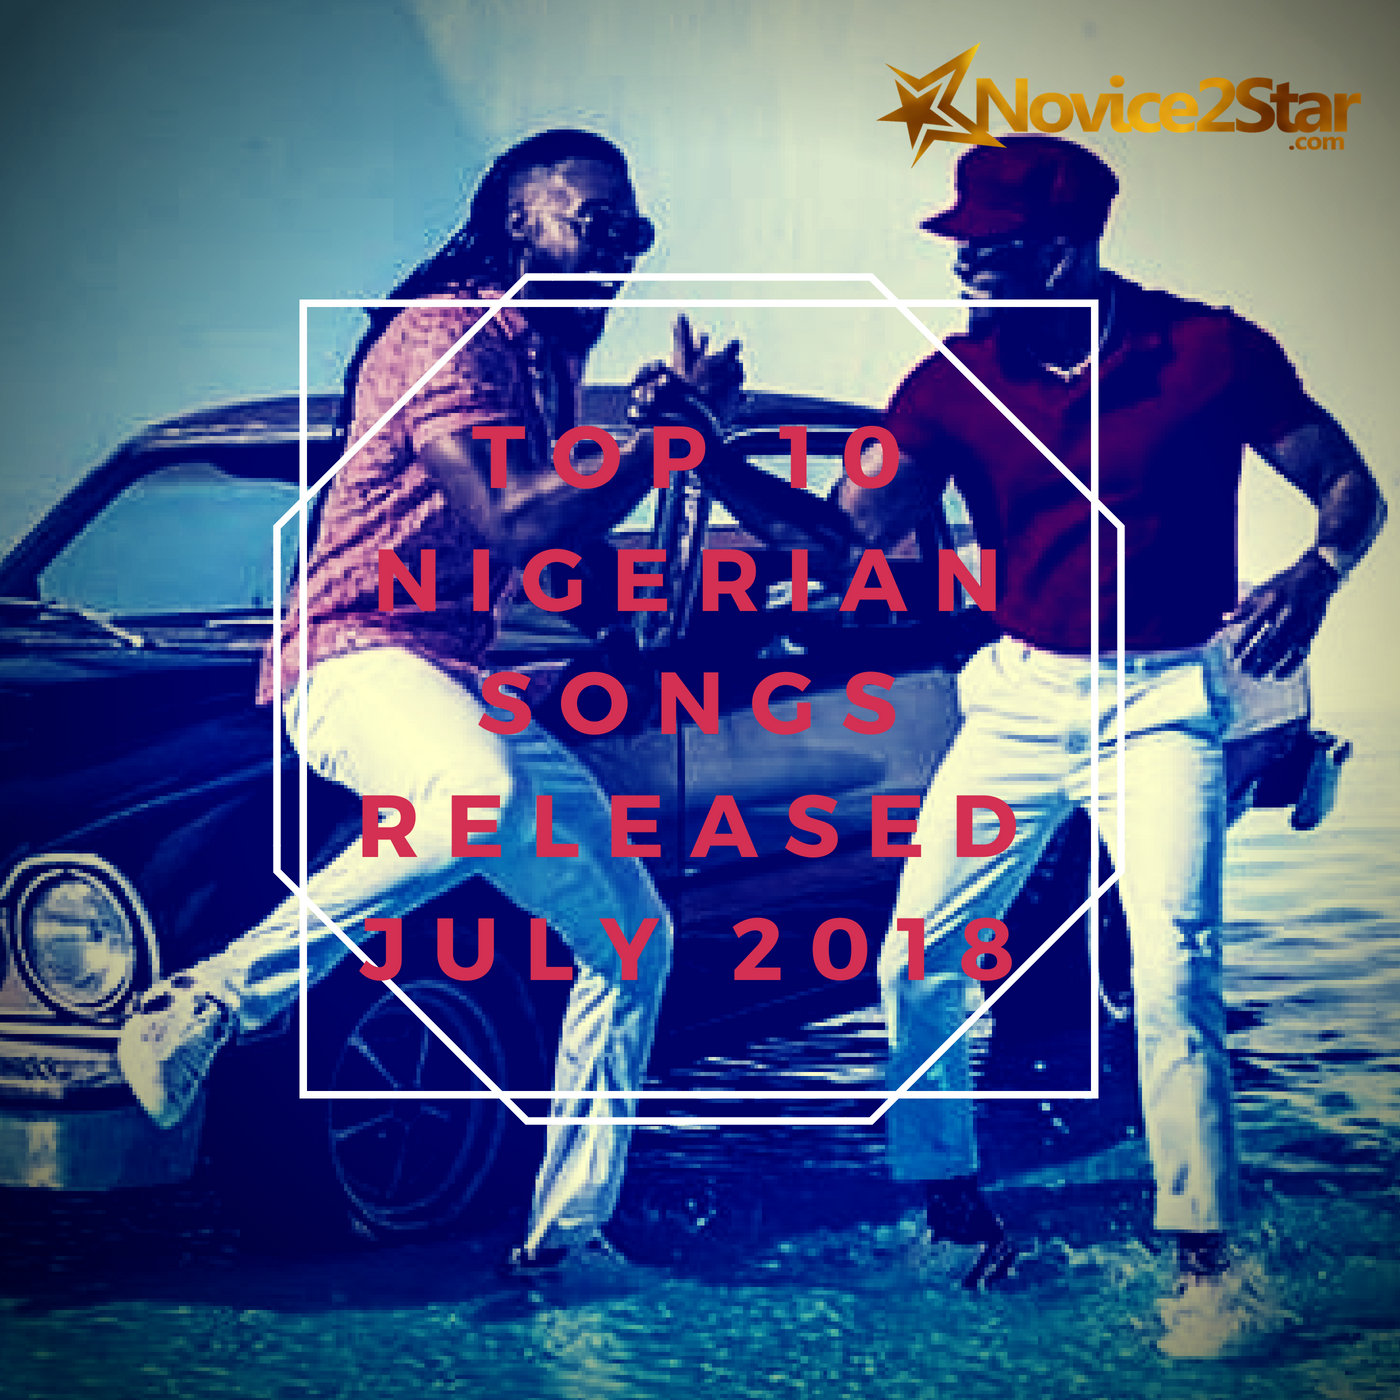 Top 10 Nigerian Songs Released July 2018